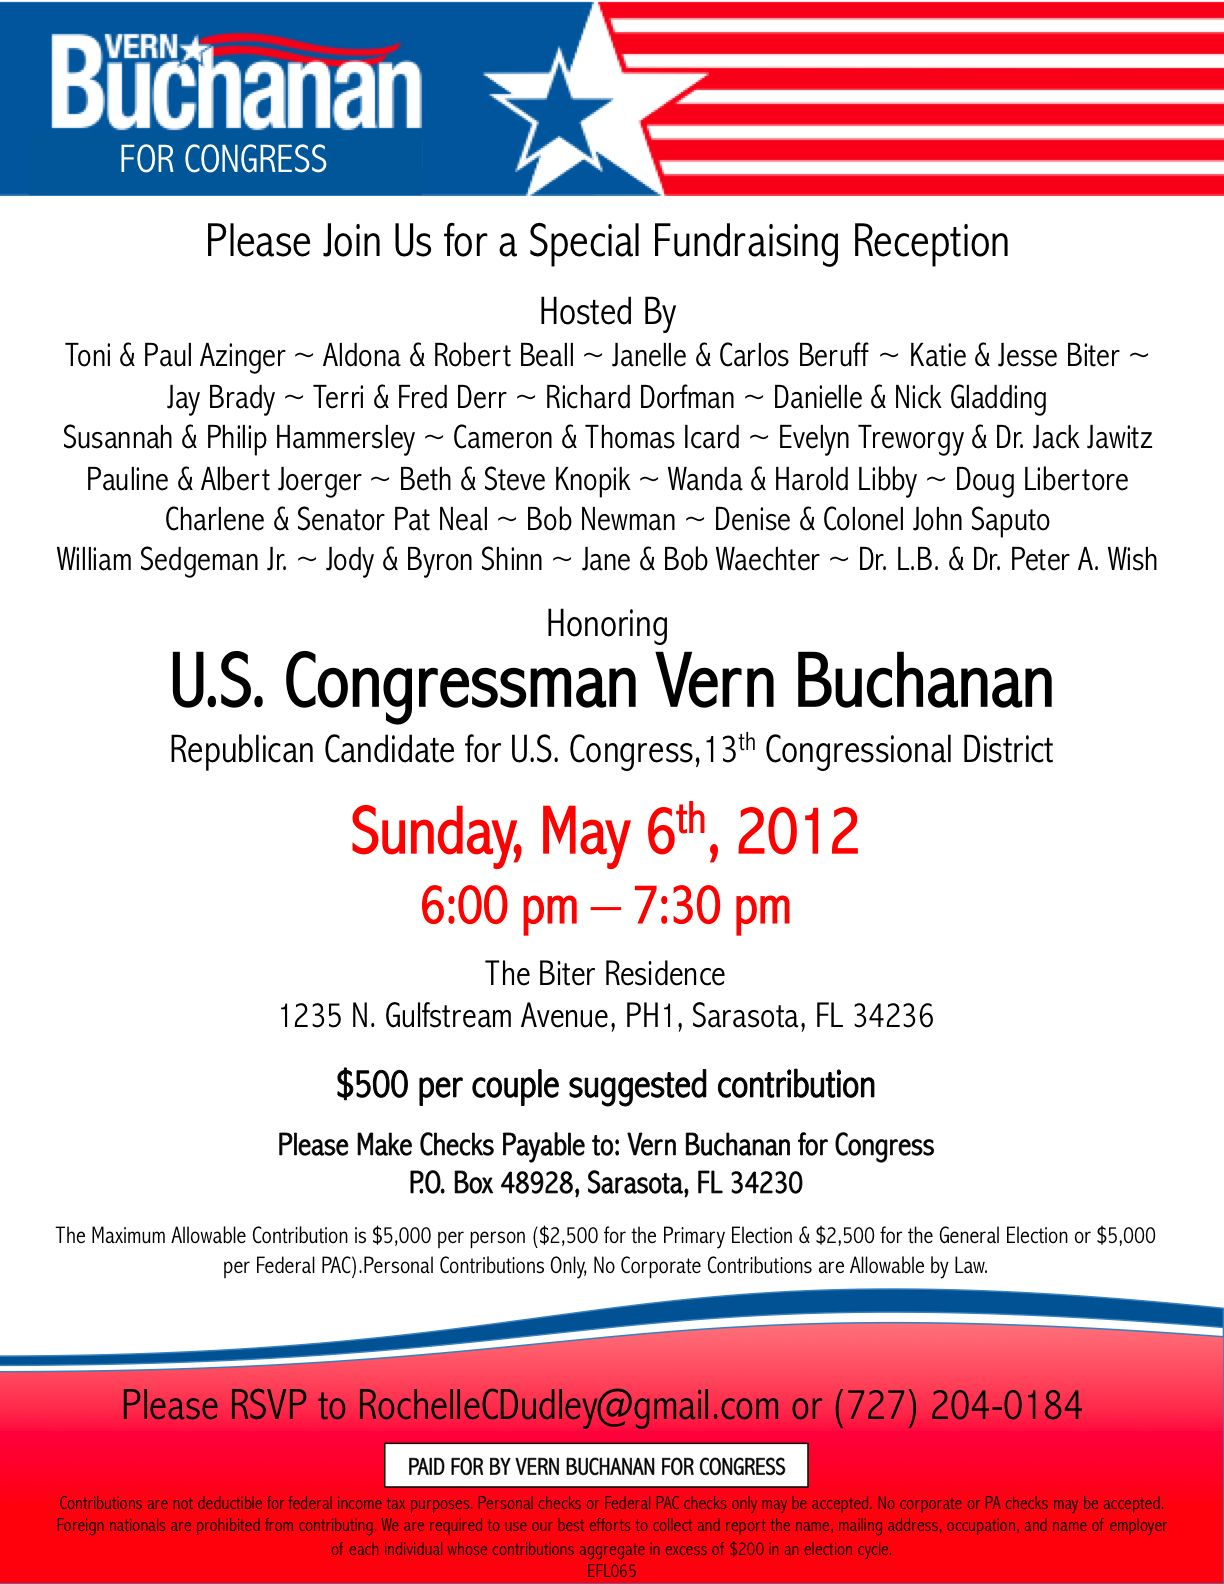 Political fundraiser invitations | Online Candidate Regular ...